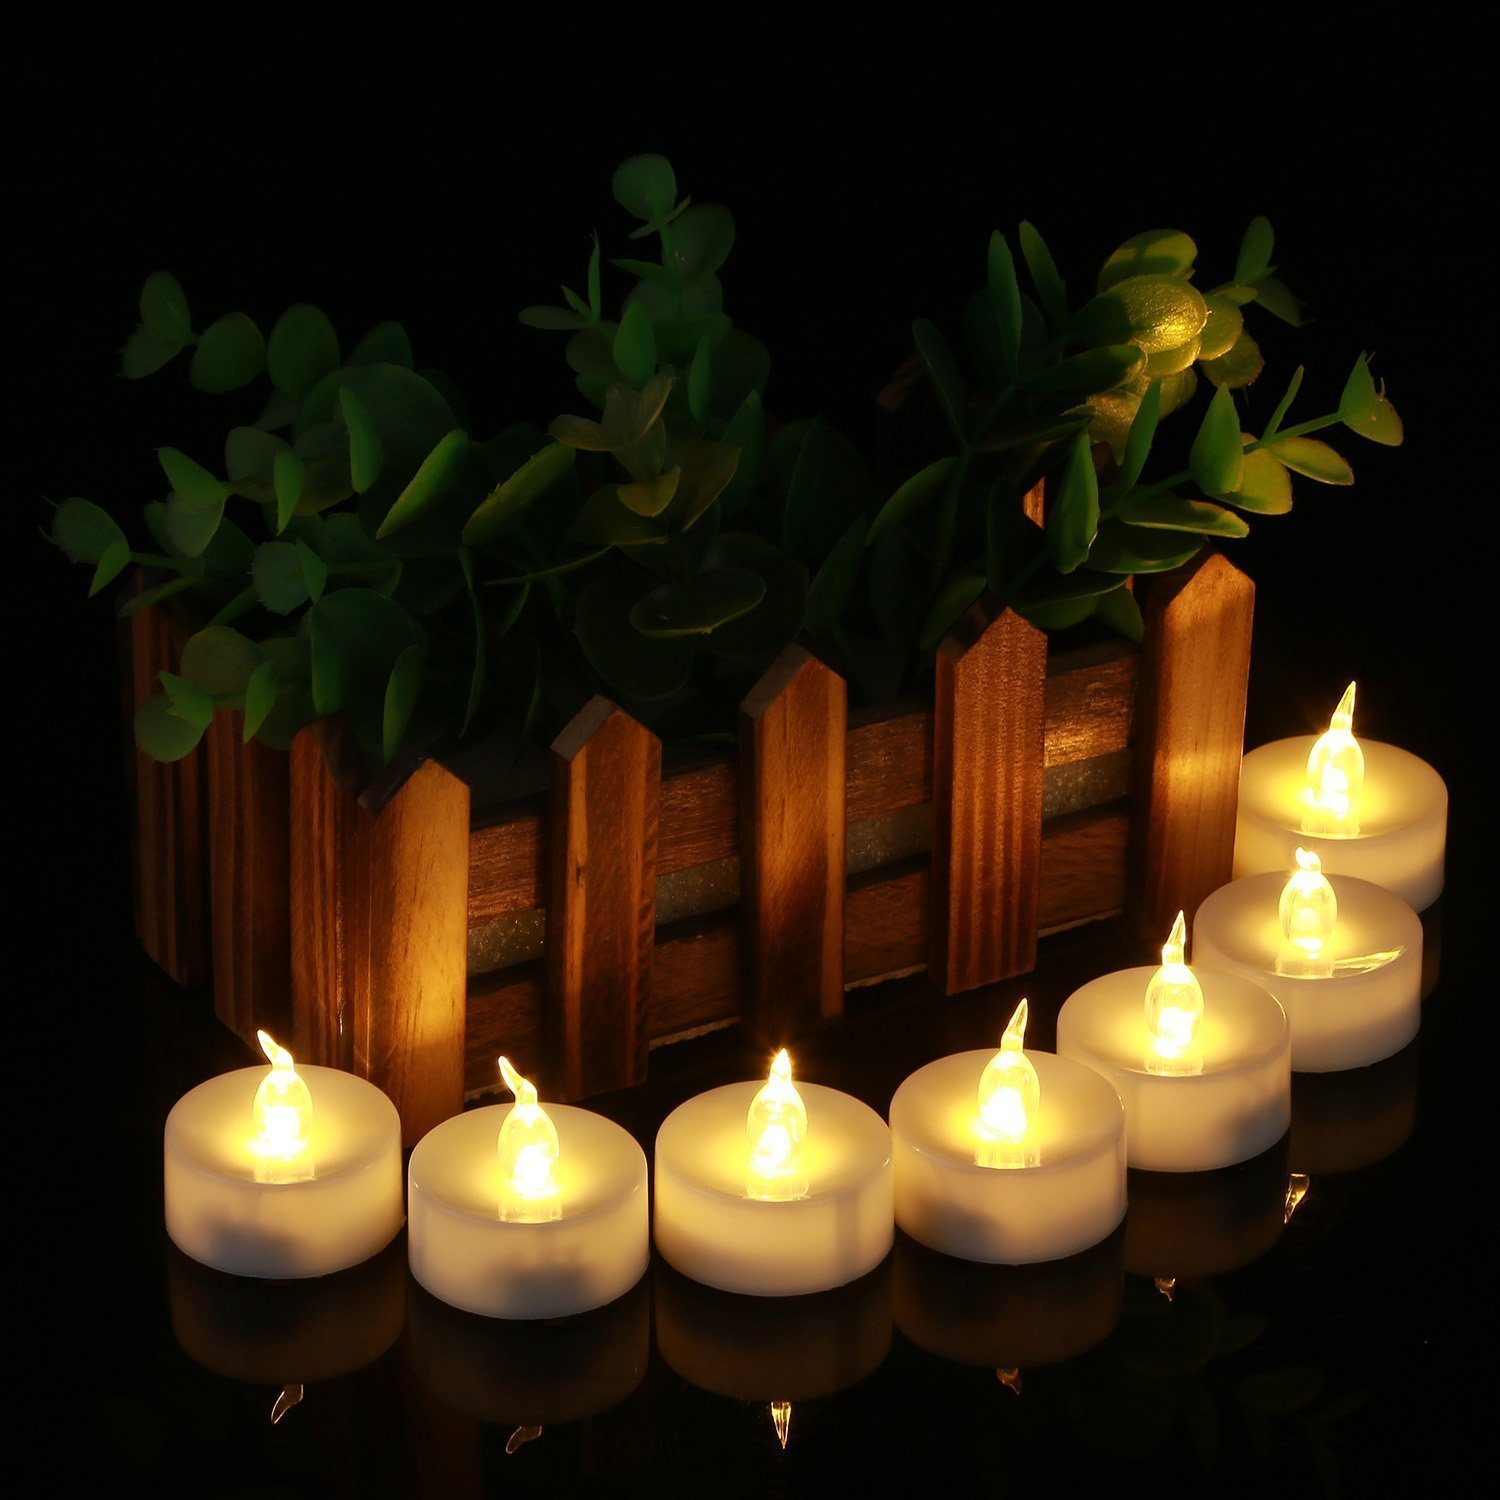 Homemory 24 PACK Warm White Battery LED Tea Lights, Flameless Flickering Tealight Candle, Dia 1.4'' Electric Fake Candle for Votive, Wedding, Party, Table, Dining room, Gift by Homemory (Image #2)